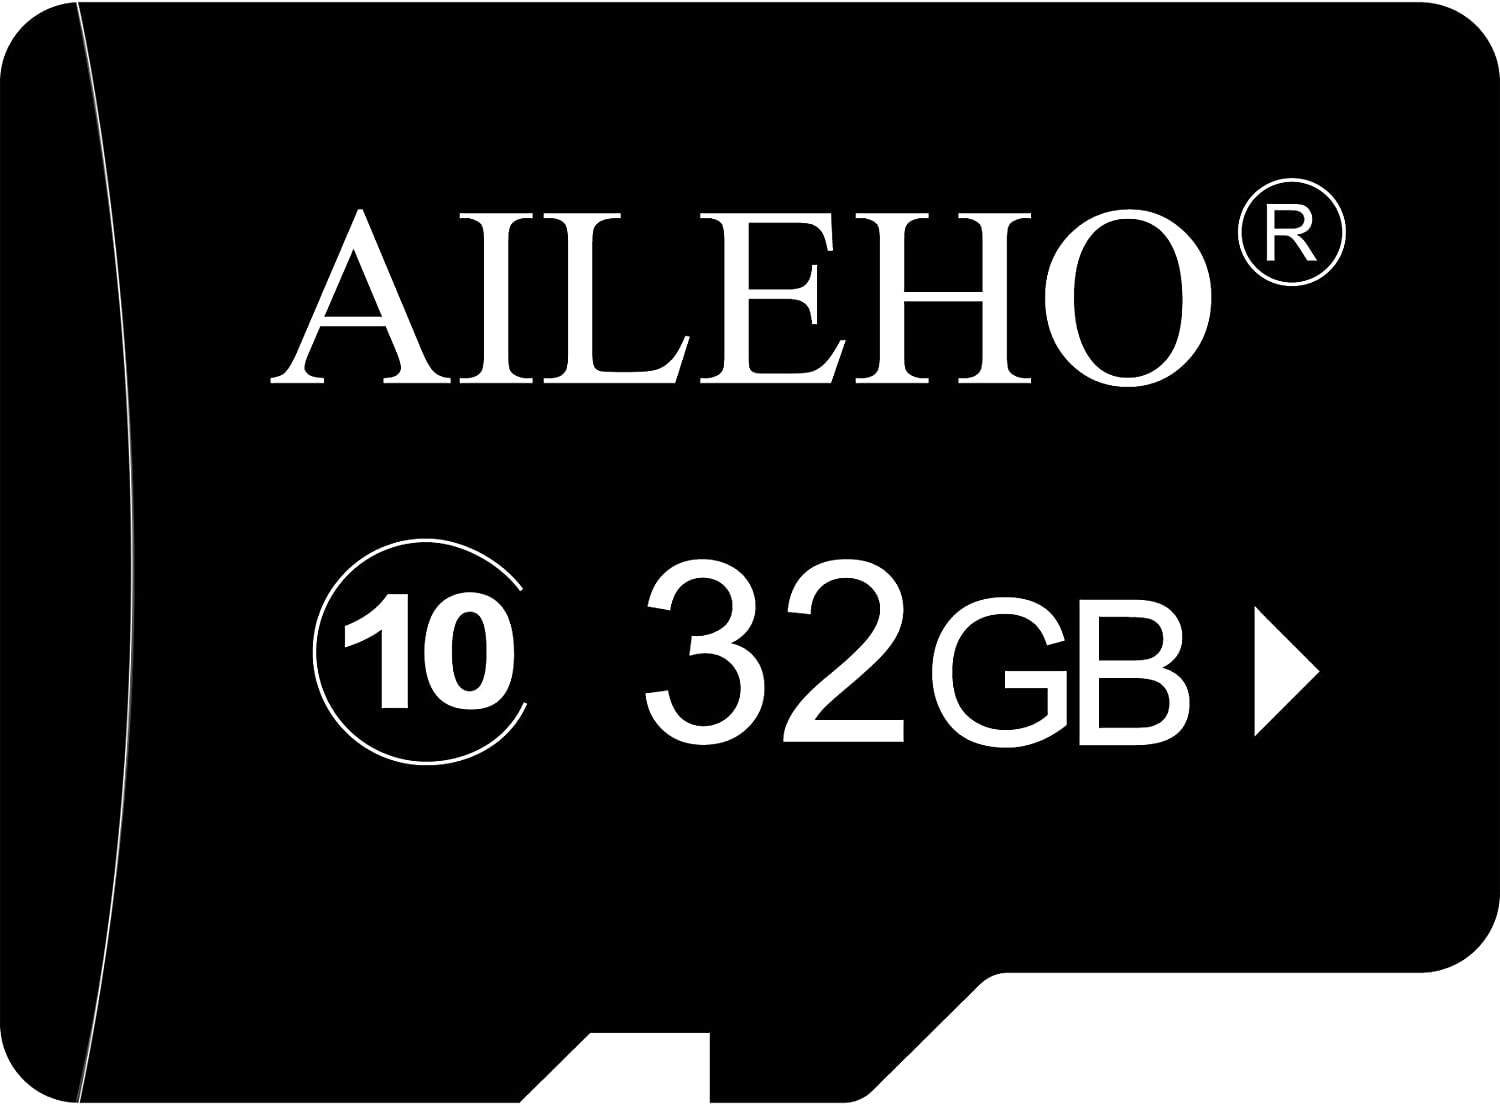 AILEHO 32GB Micro Memory Card Class 10 TF Flash Memory Card for Kids Camera,Digital Video Cameras,Kids Tablets or Action Camera